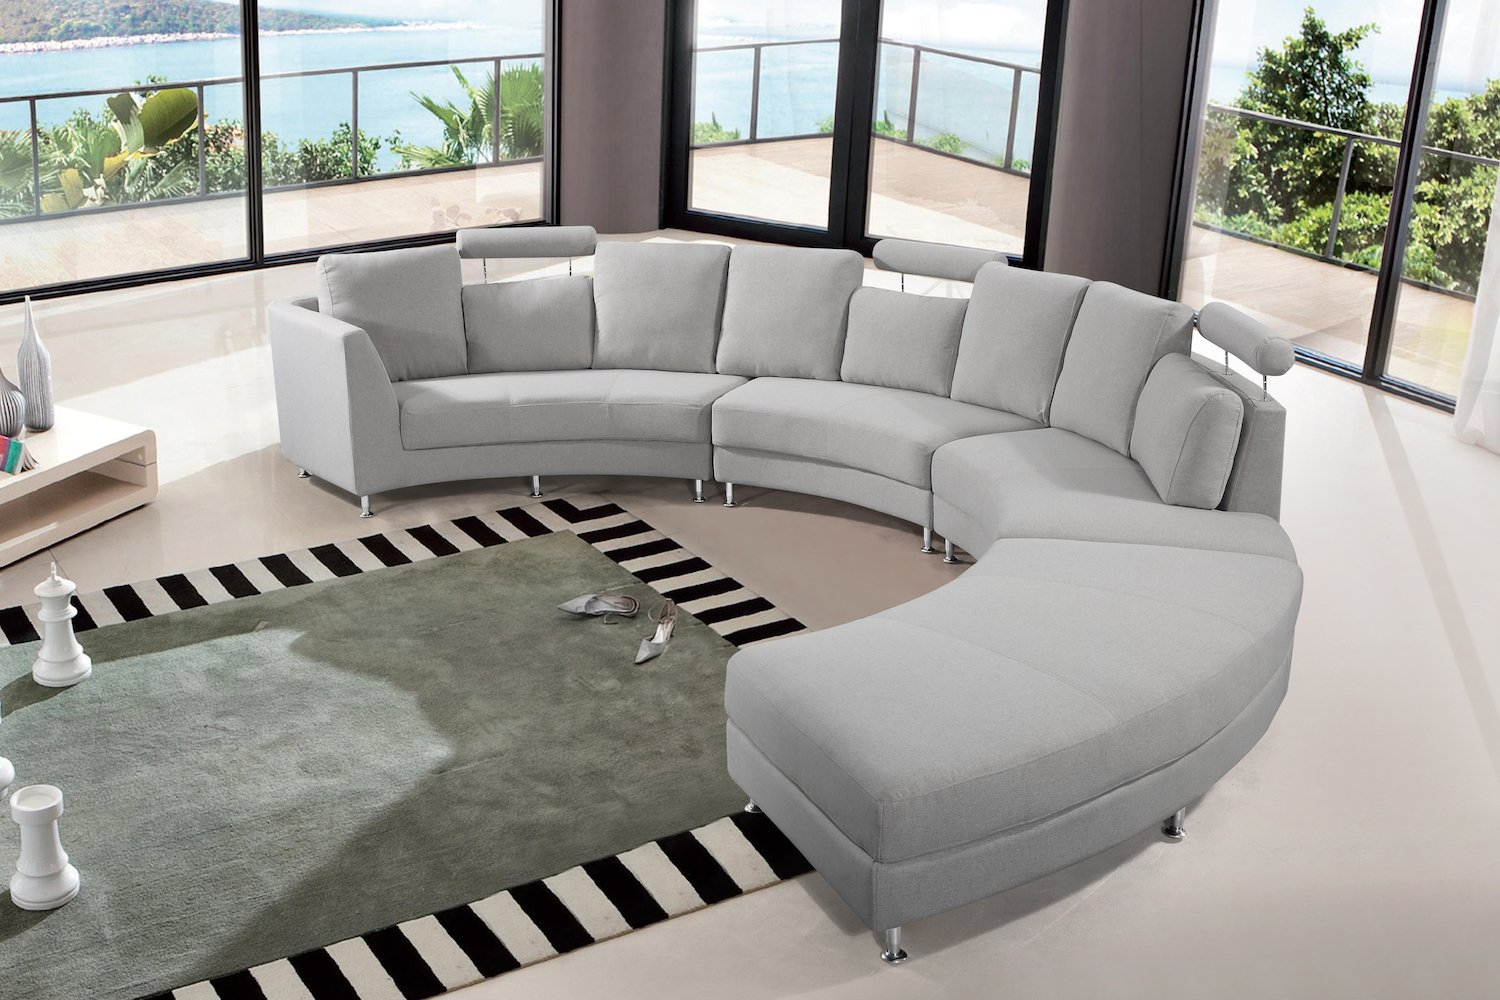 Amazon.com: velago muebles de patio Rossini tela Circular ...